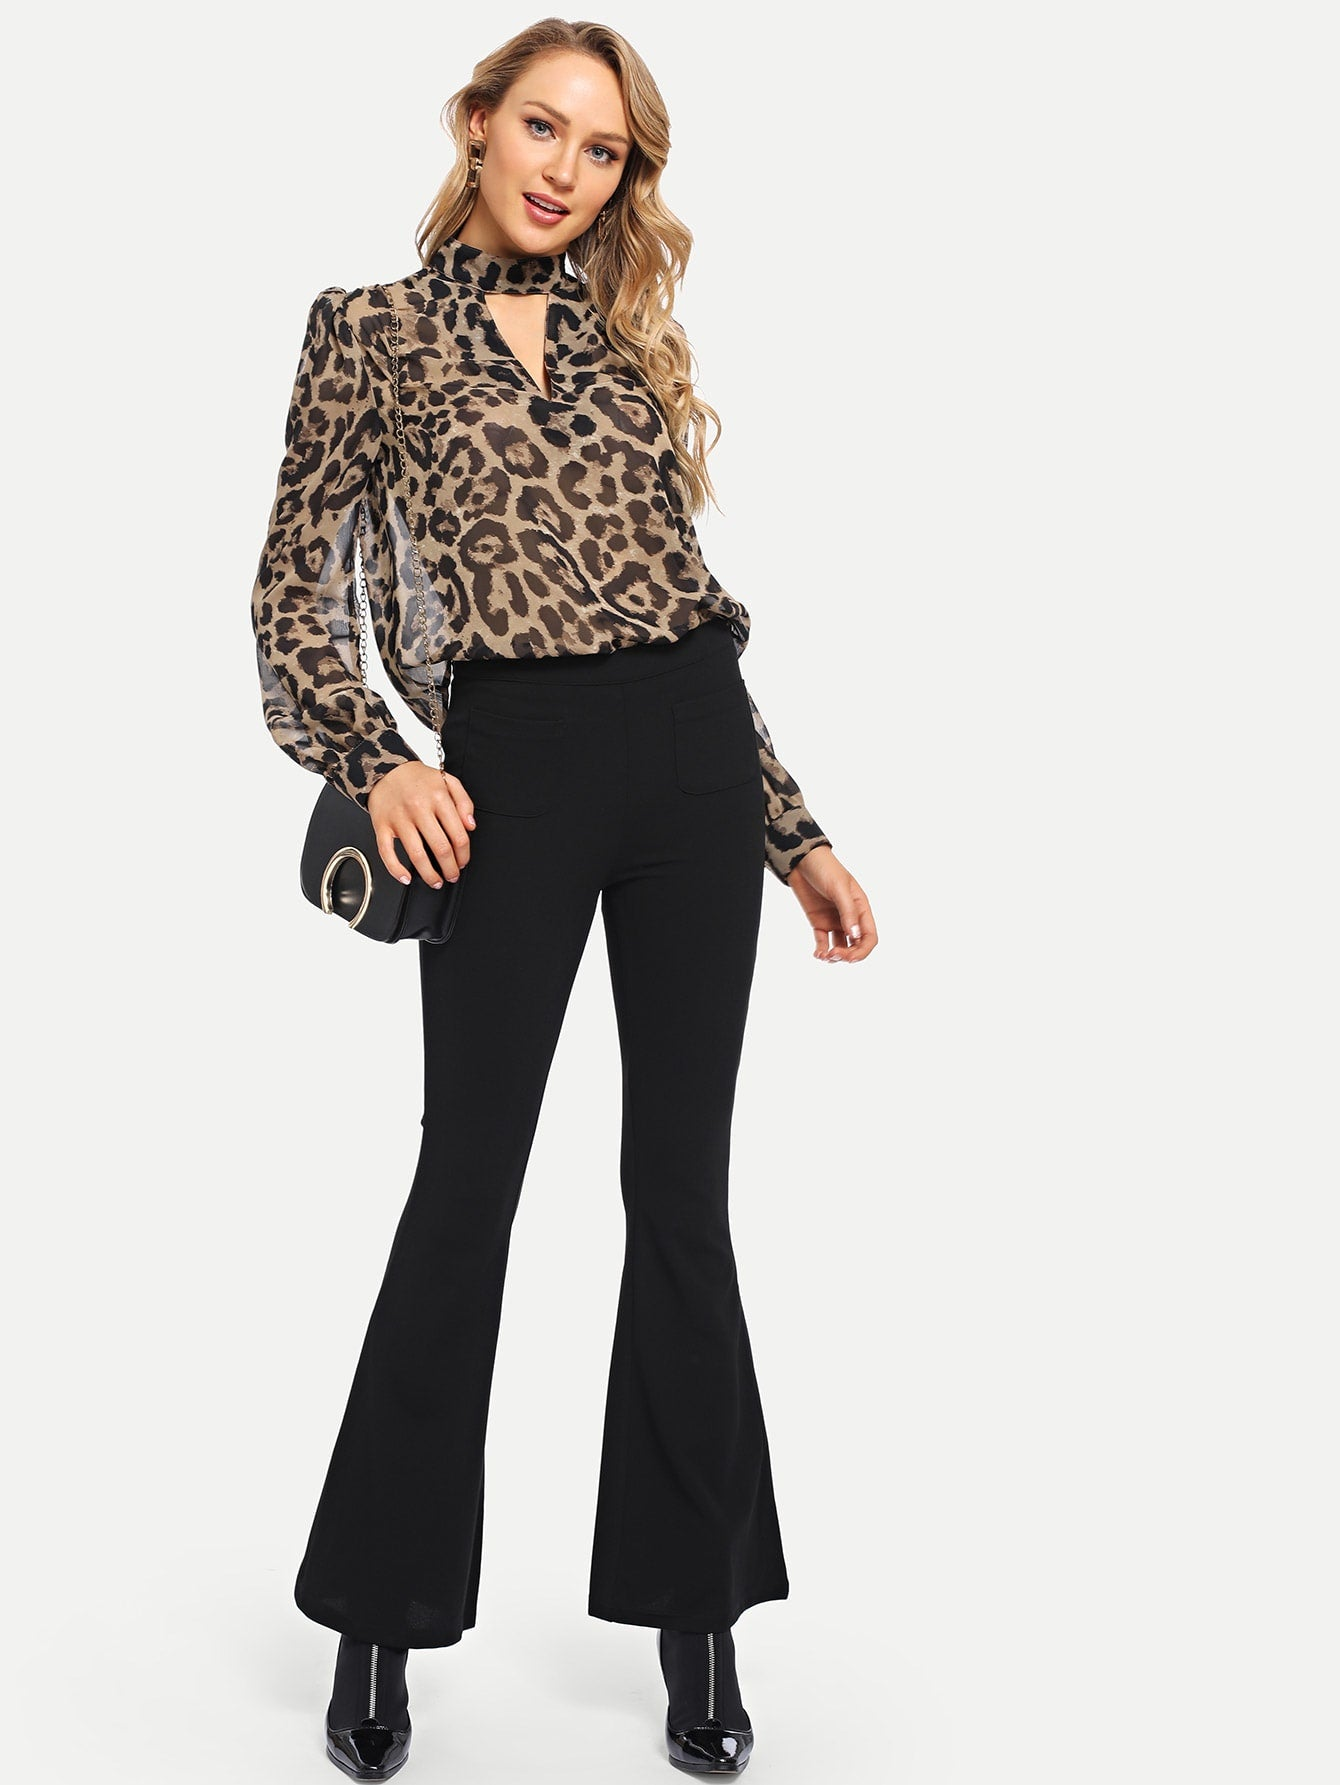 Leopard Print Choker Neck Blouse | Fashion Top | SHEIN | Joan & Vern's Apparel